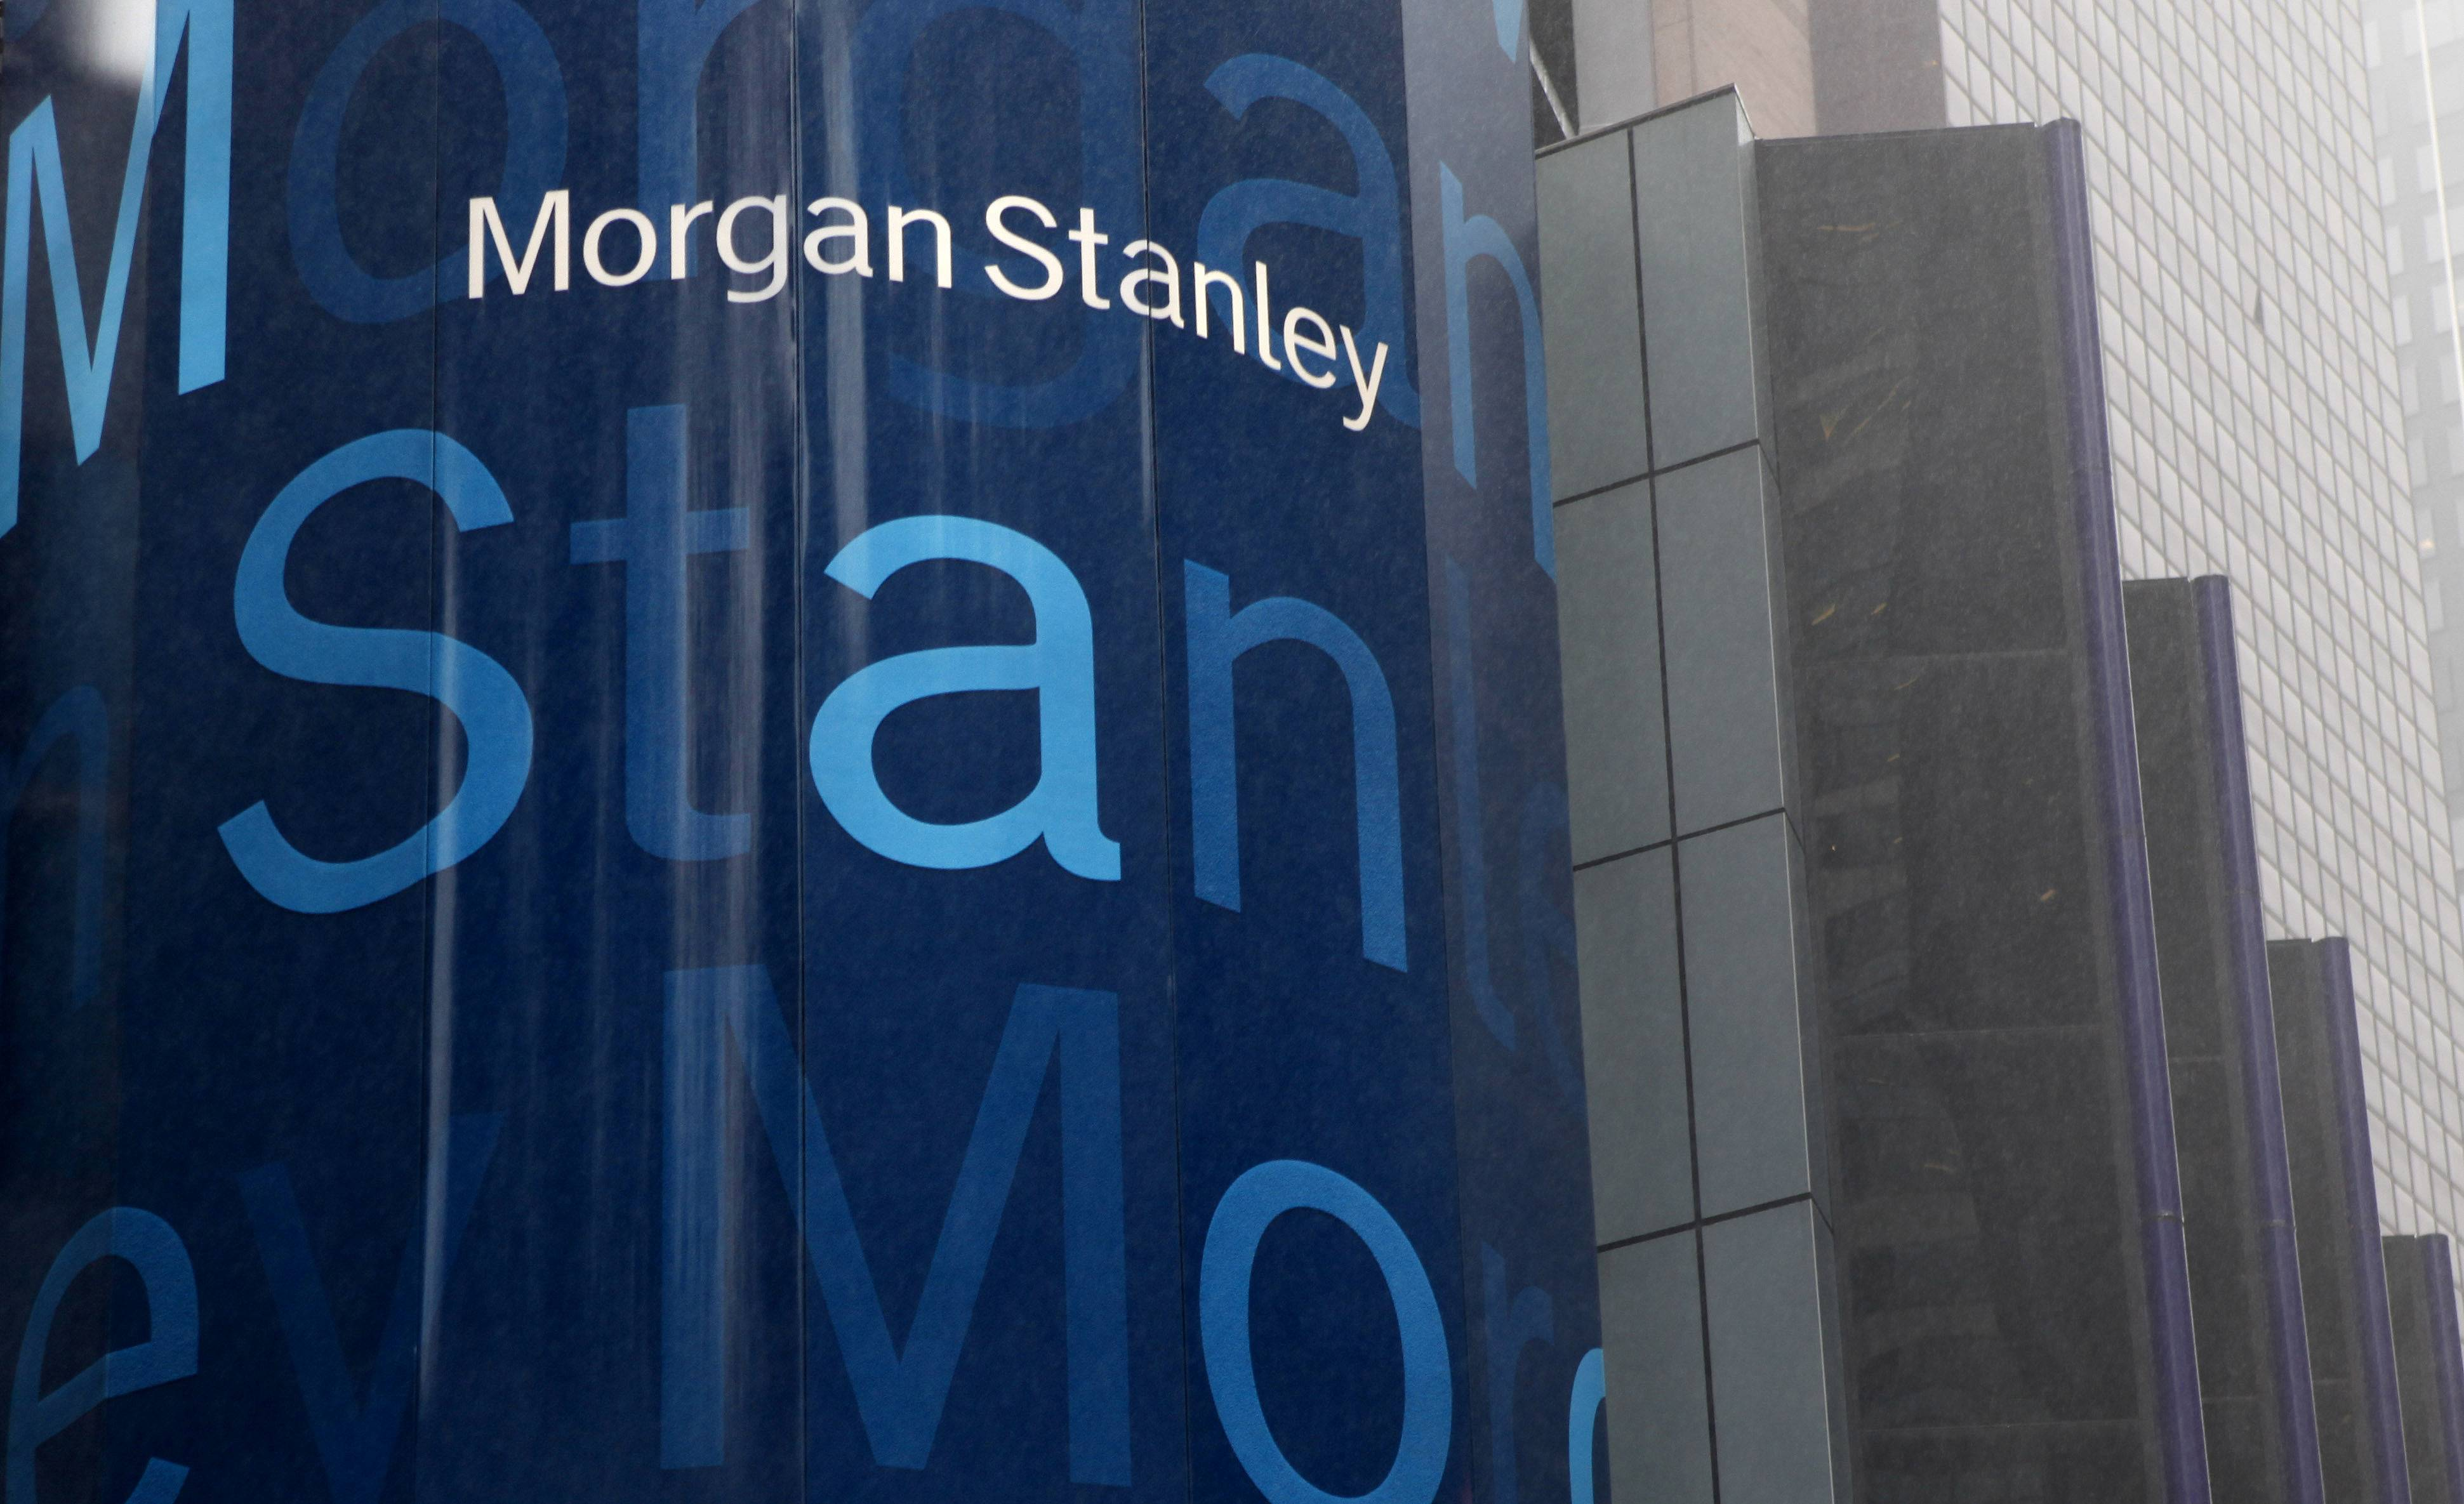 Investment bank Morgan Stanley said Thursday that its first-quarter income rose 18 percent from a year ago, helped by higher earnings in its trading and merger and acquisitions advisory businesses.